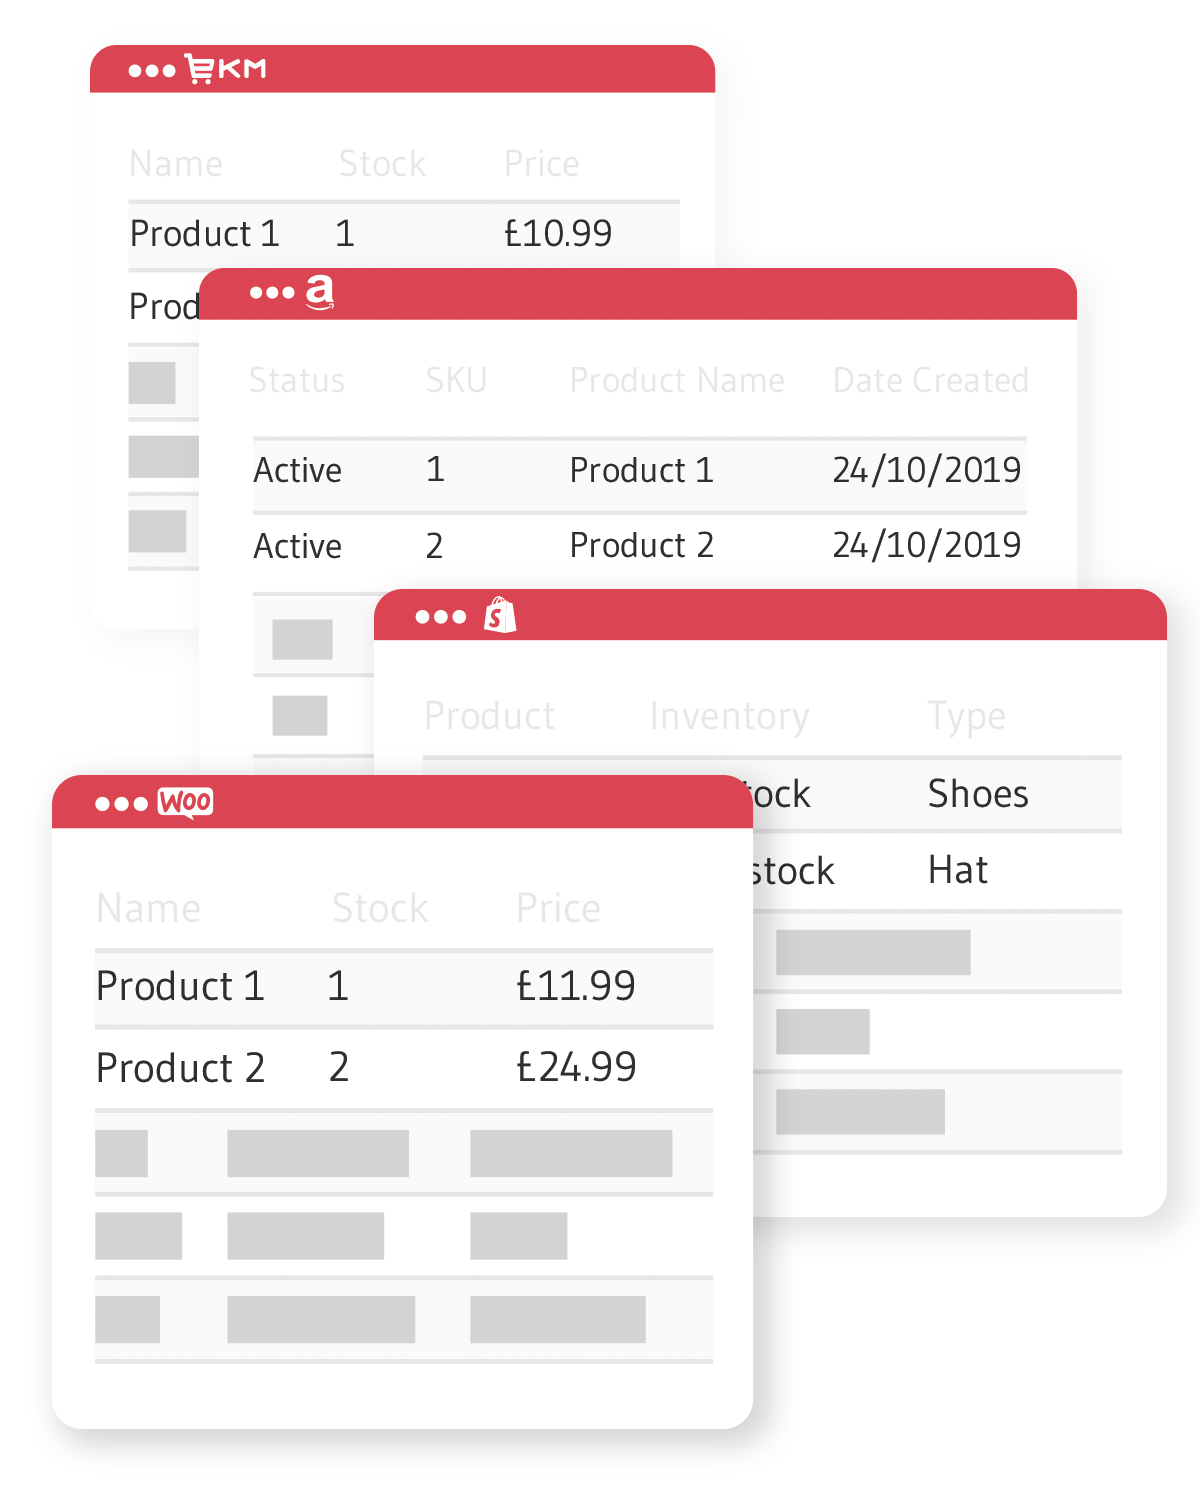 OnePatch removes the time taken to log into each sales channel and allows you to manage your inventory from one place